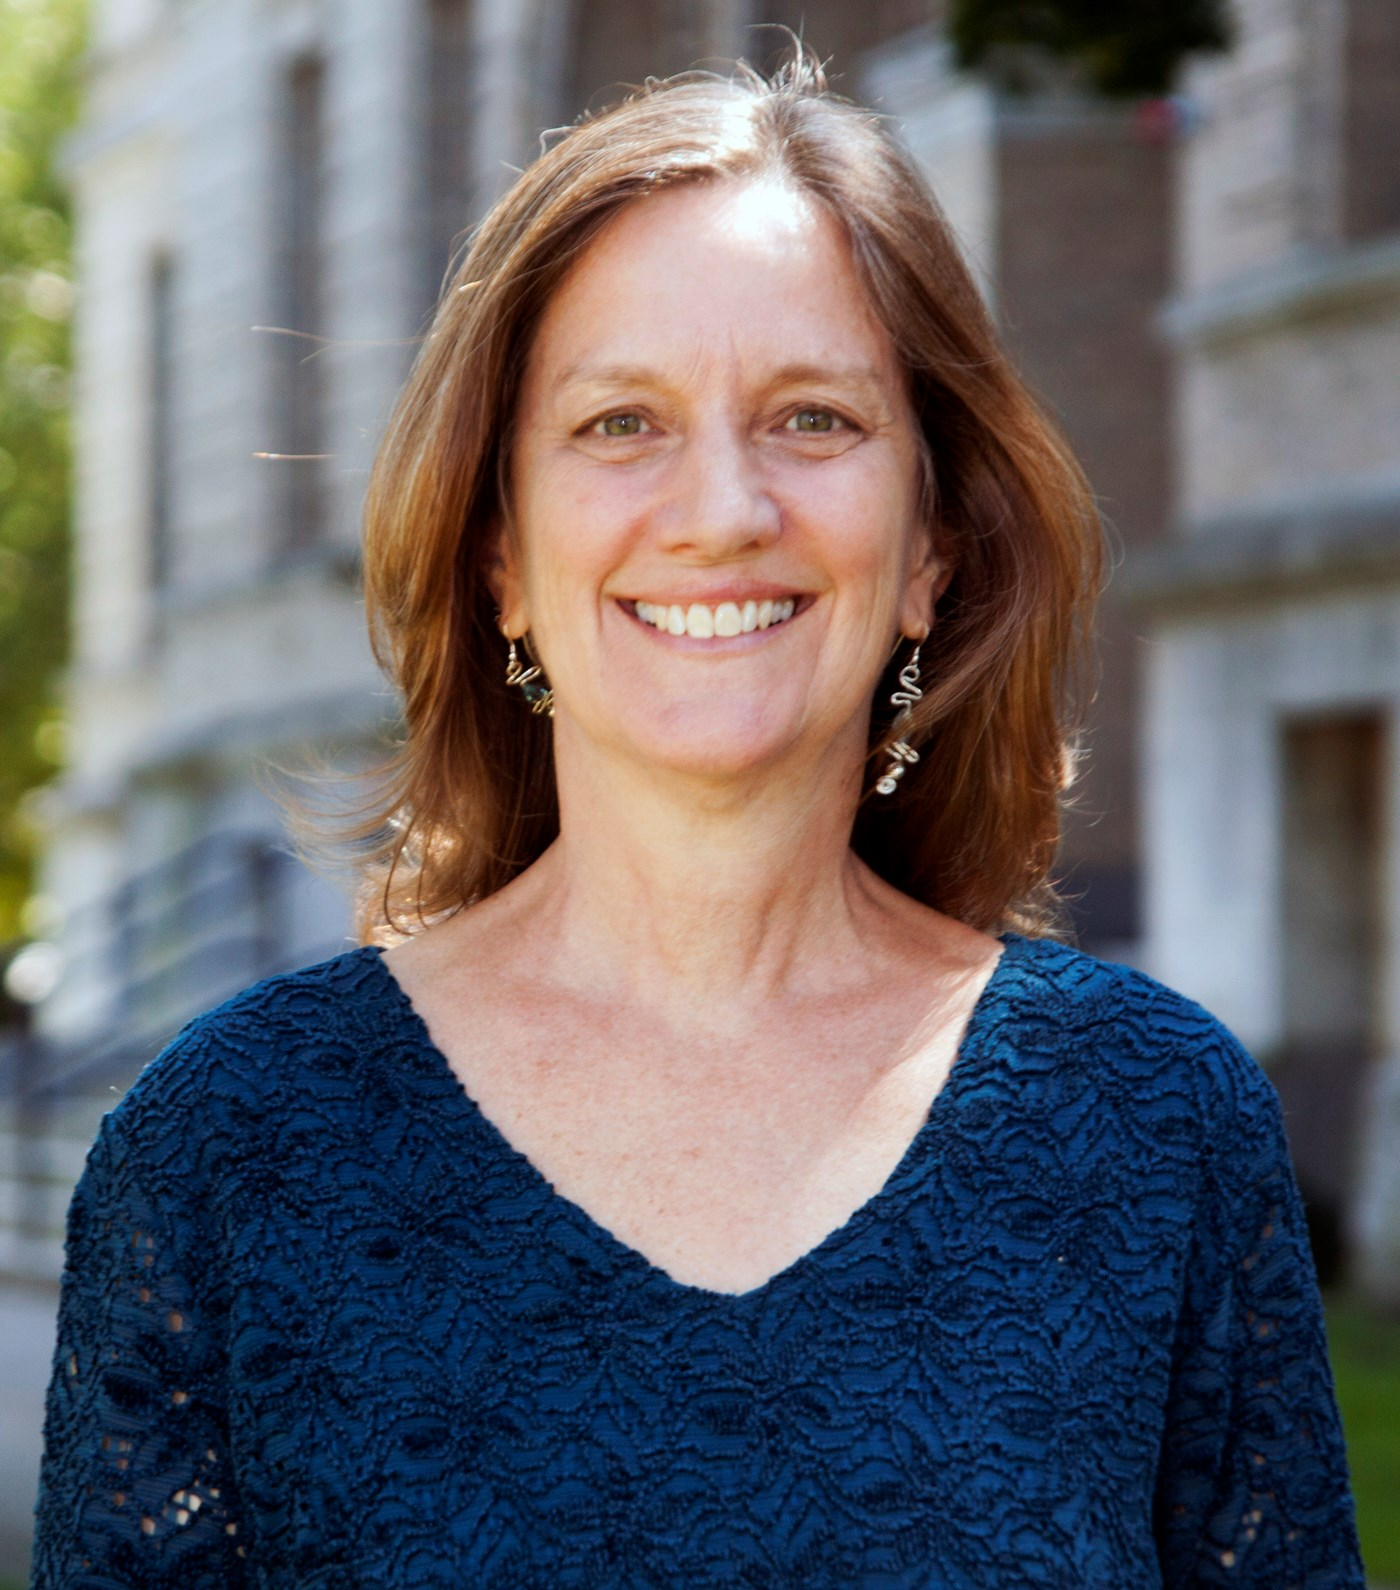 Meg Bond is Professor in the Psychology Department an, Director of the Center for Women & Work at UMass Lowell.